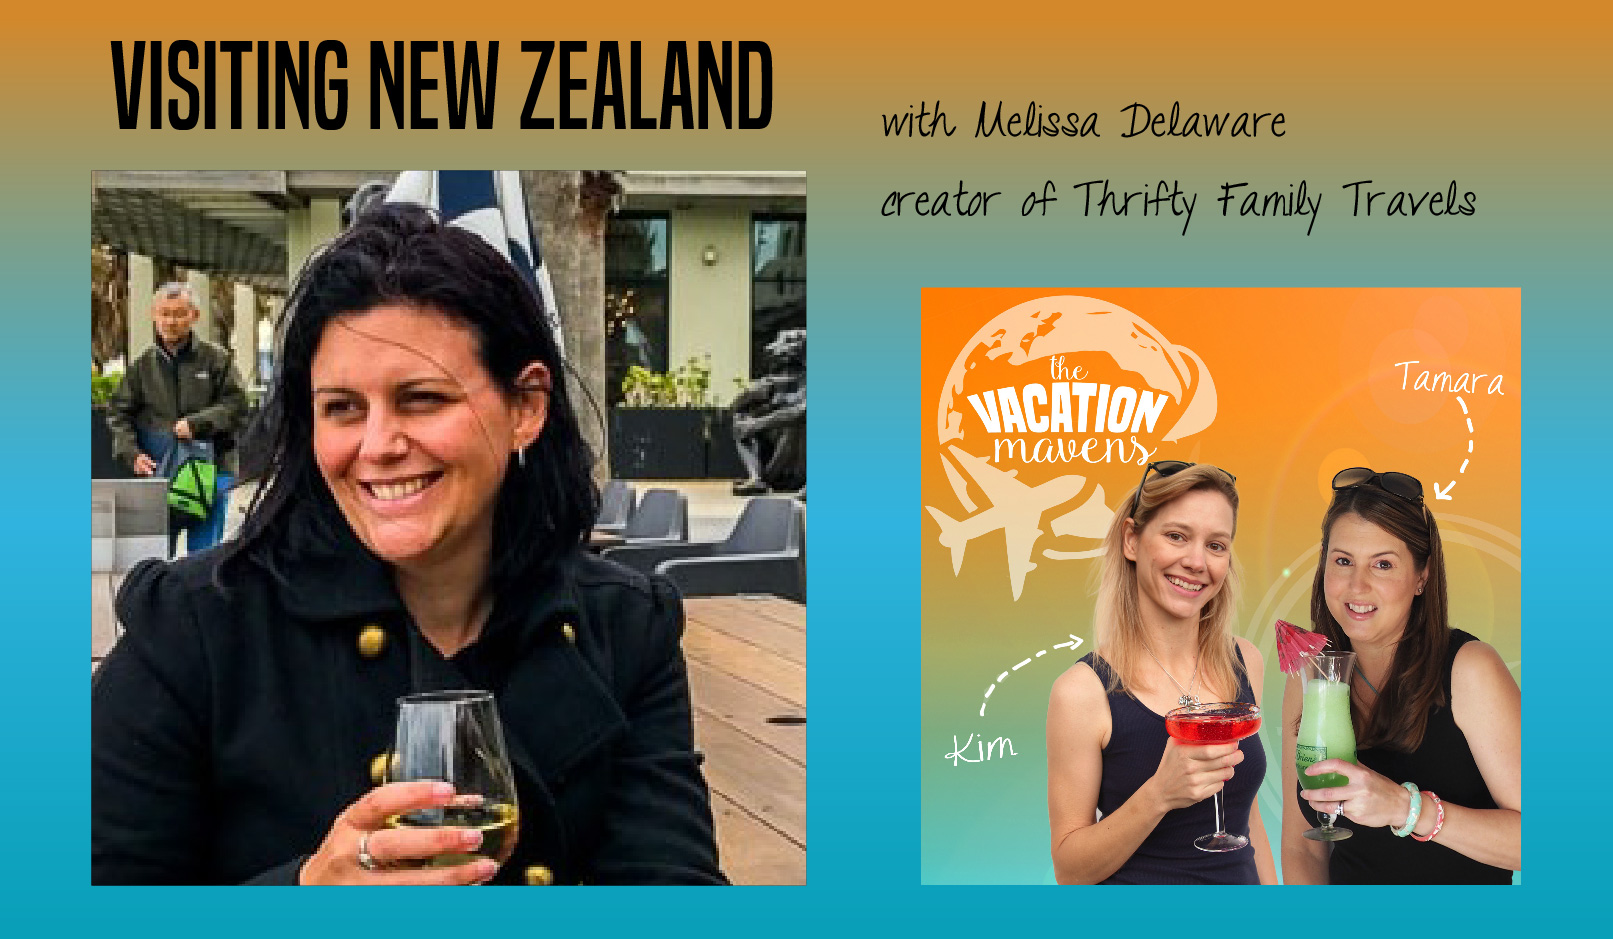 Melissa Delaware Thrifty Family Travel on Vacation Mavens podcast